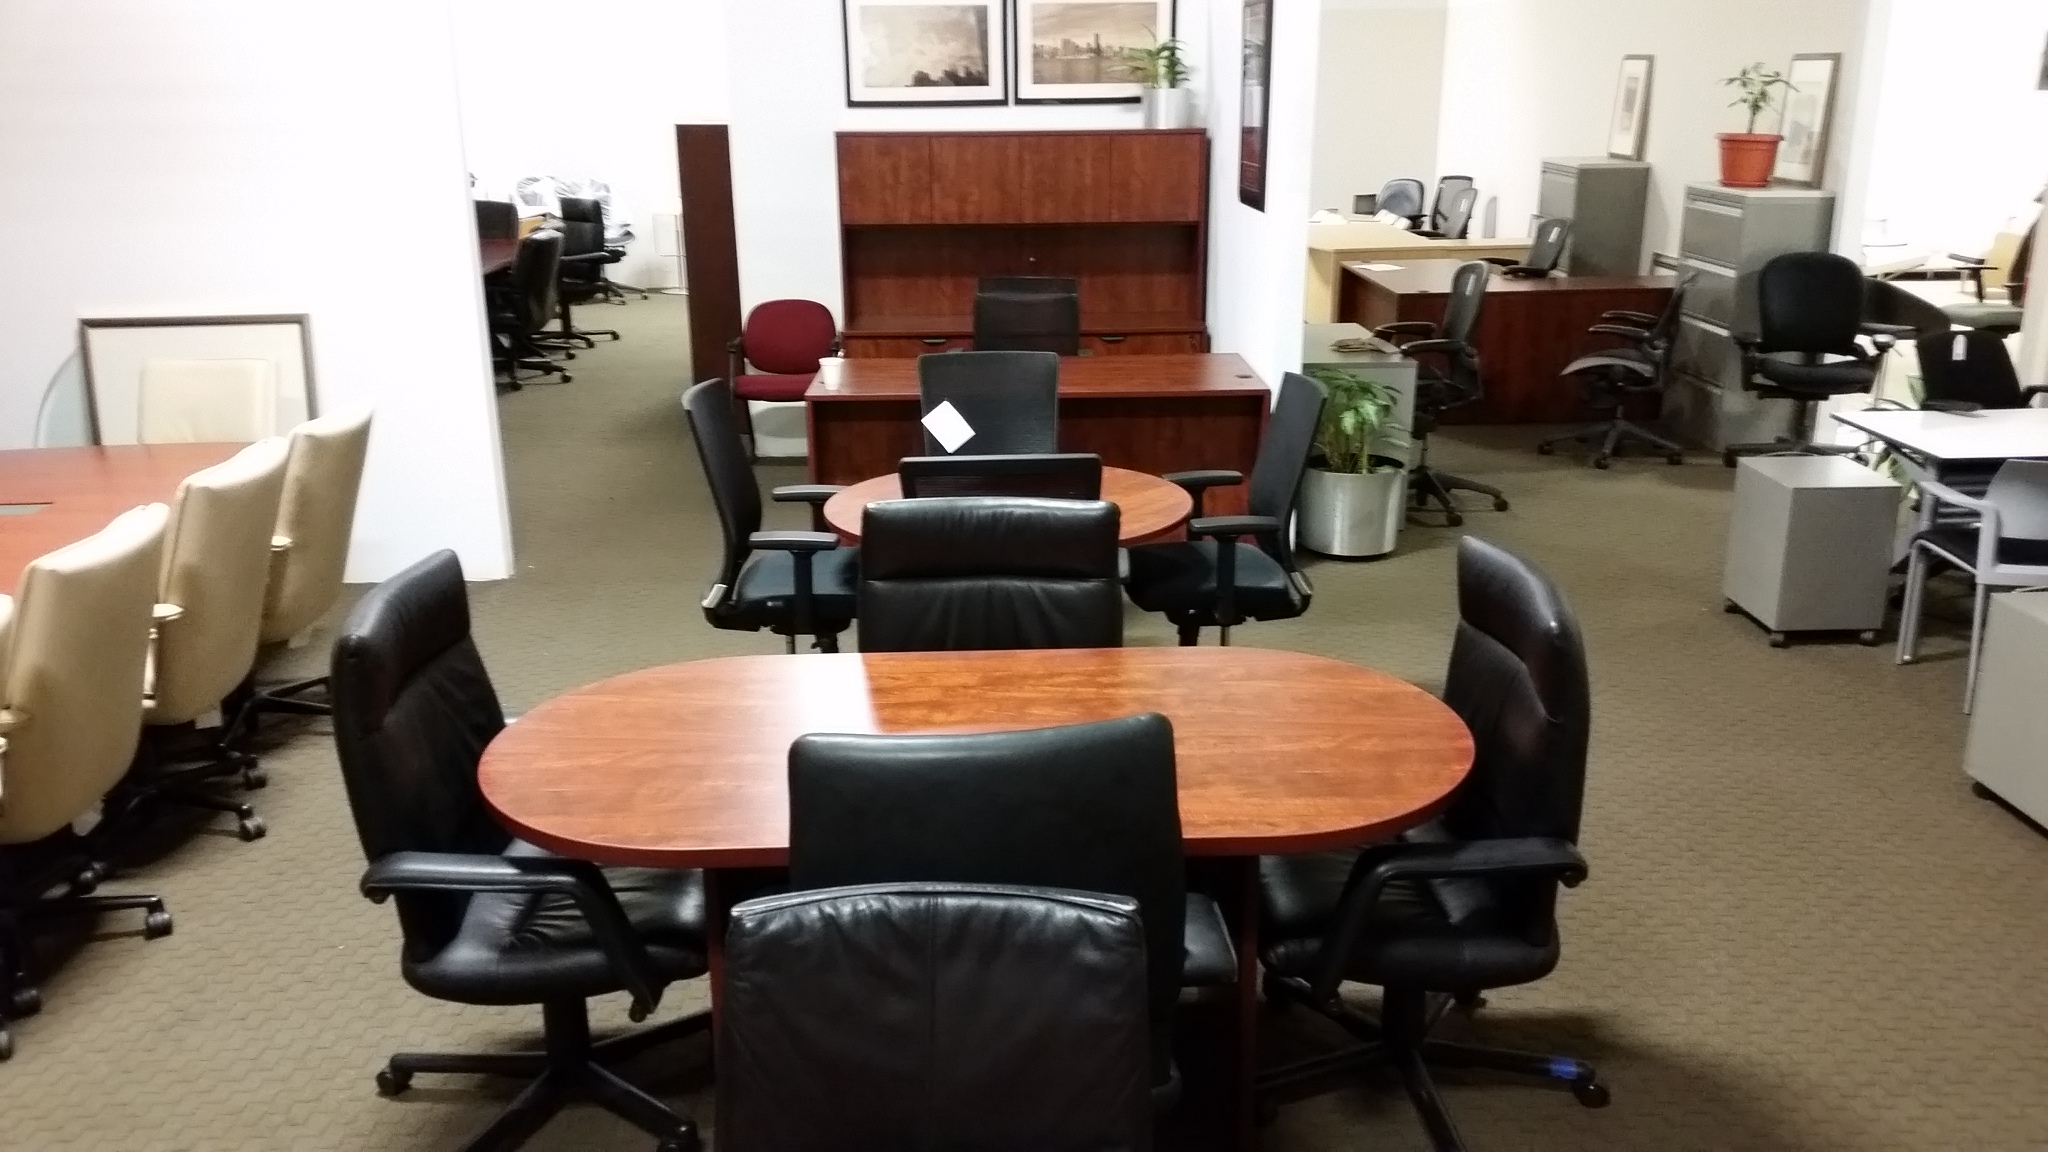 Home office furniture farmingdale ny example yvotubecom for Home furniture galleries farmingdale